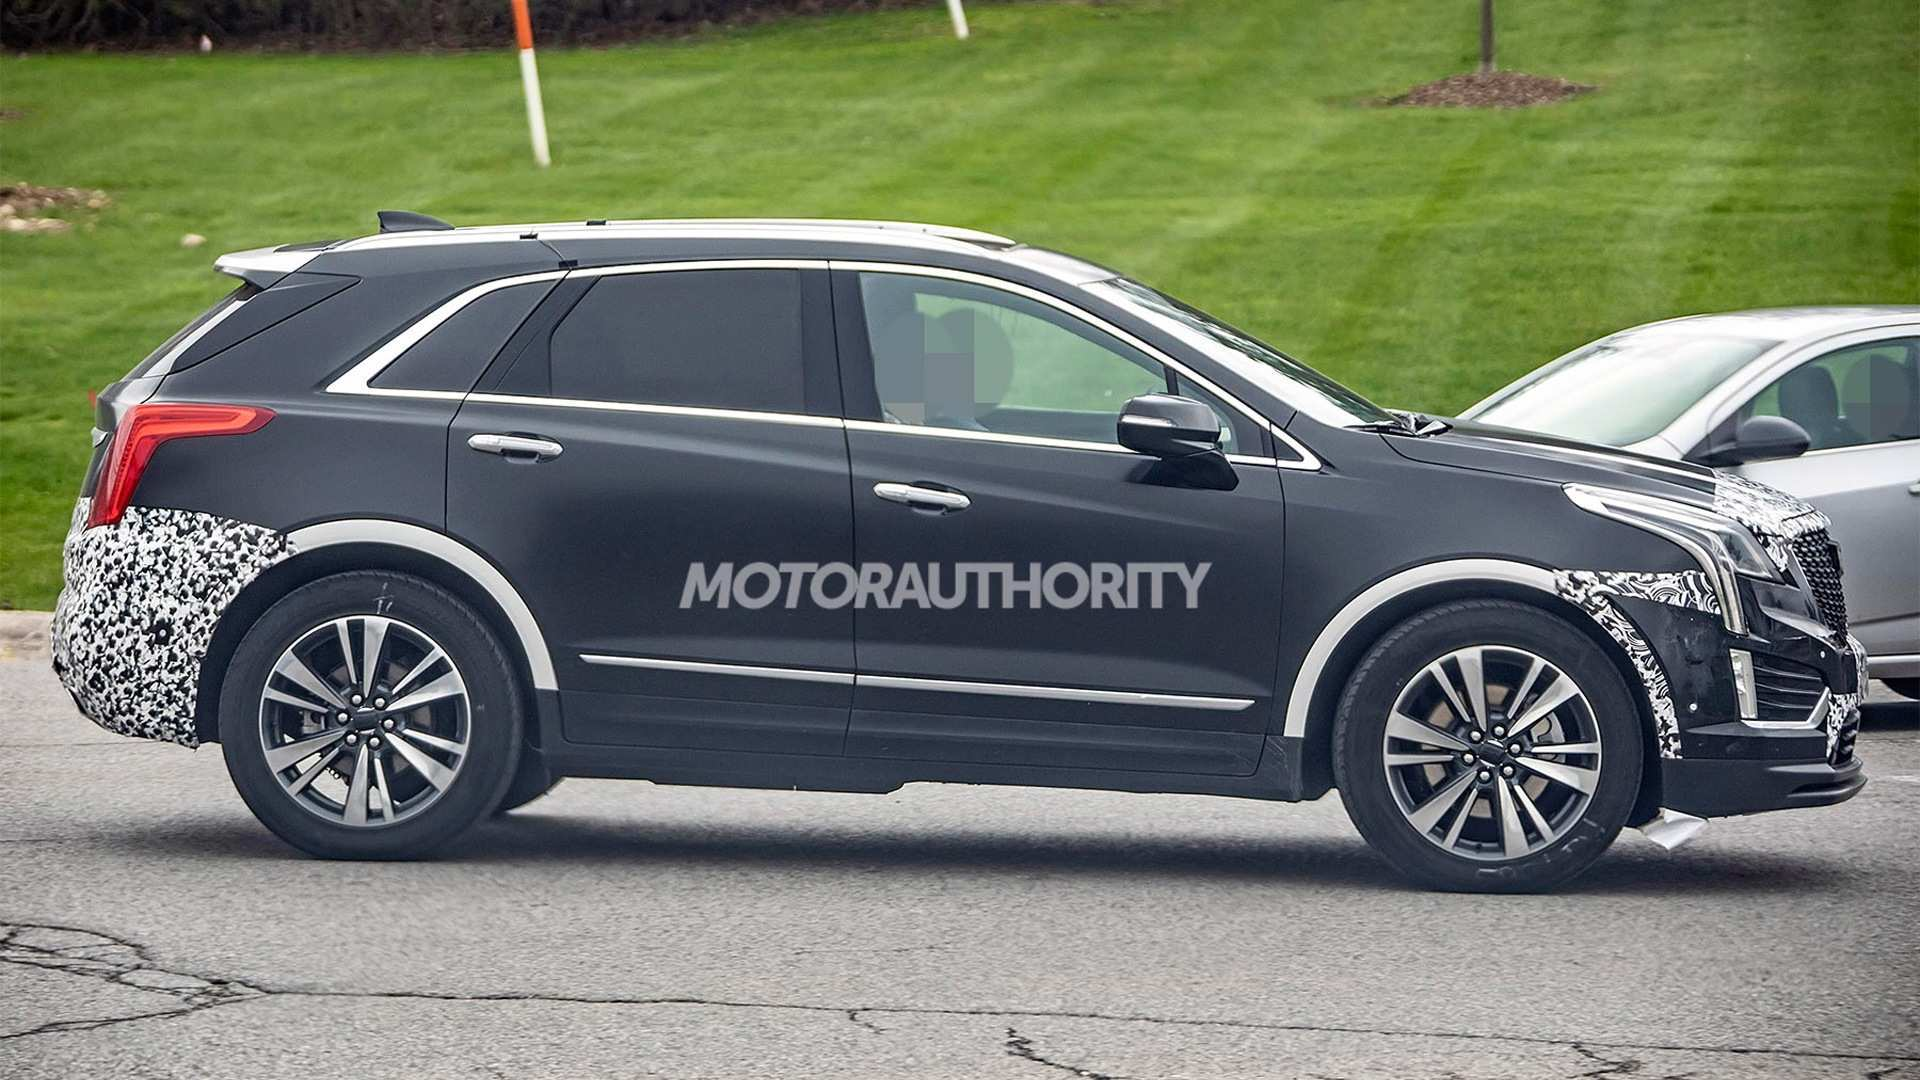 15 Best When Will The 2020 Cadillac Xt5 Be Available Spy Shoot